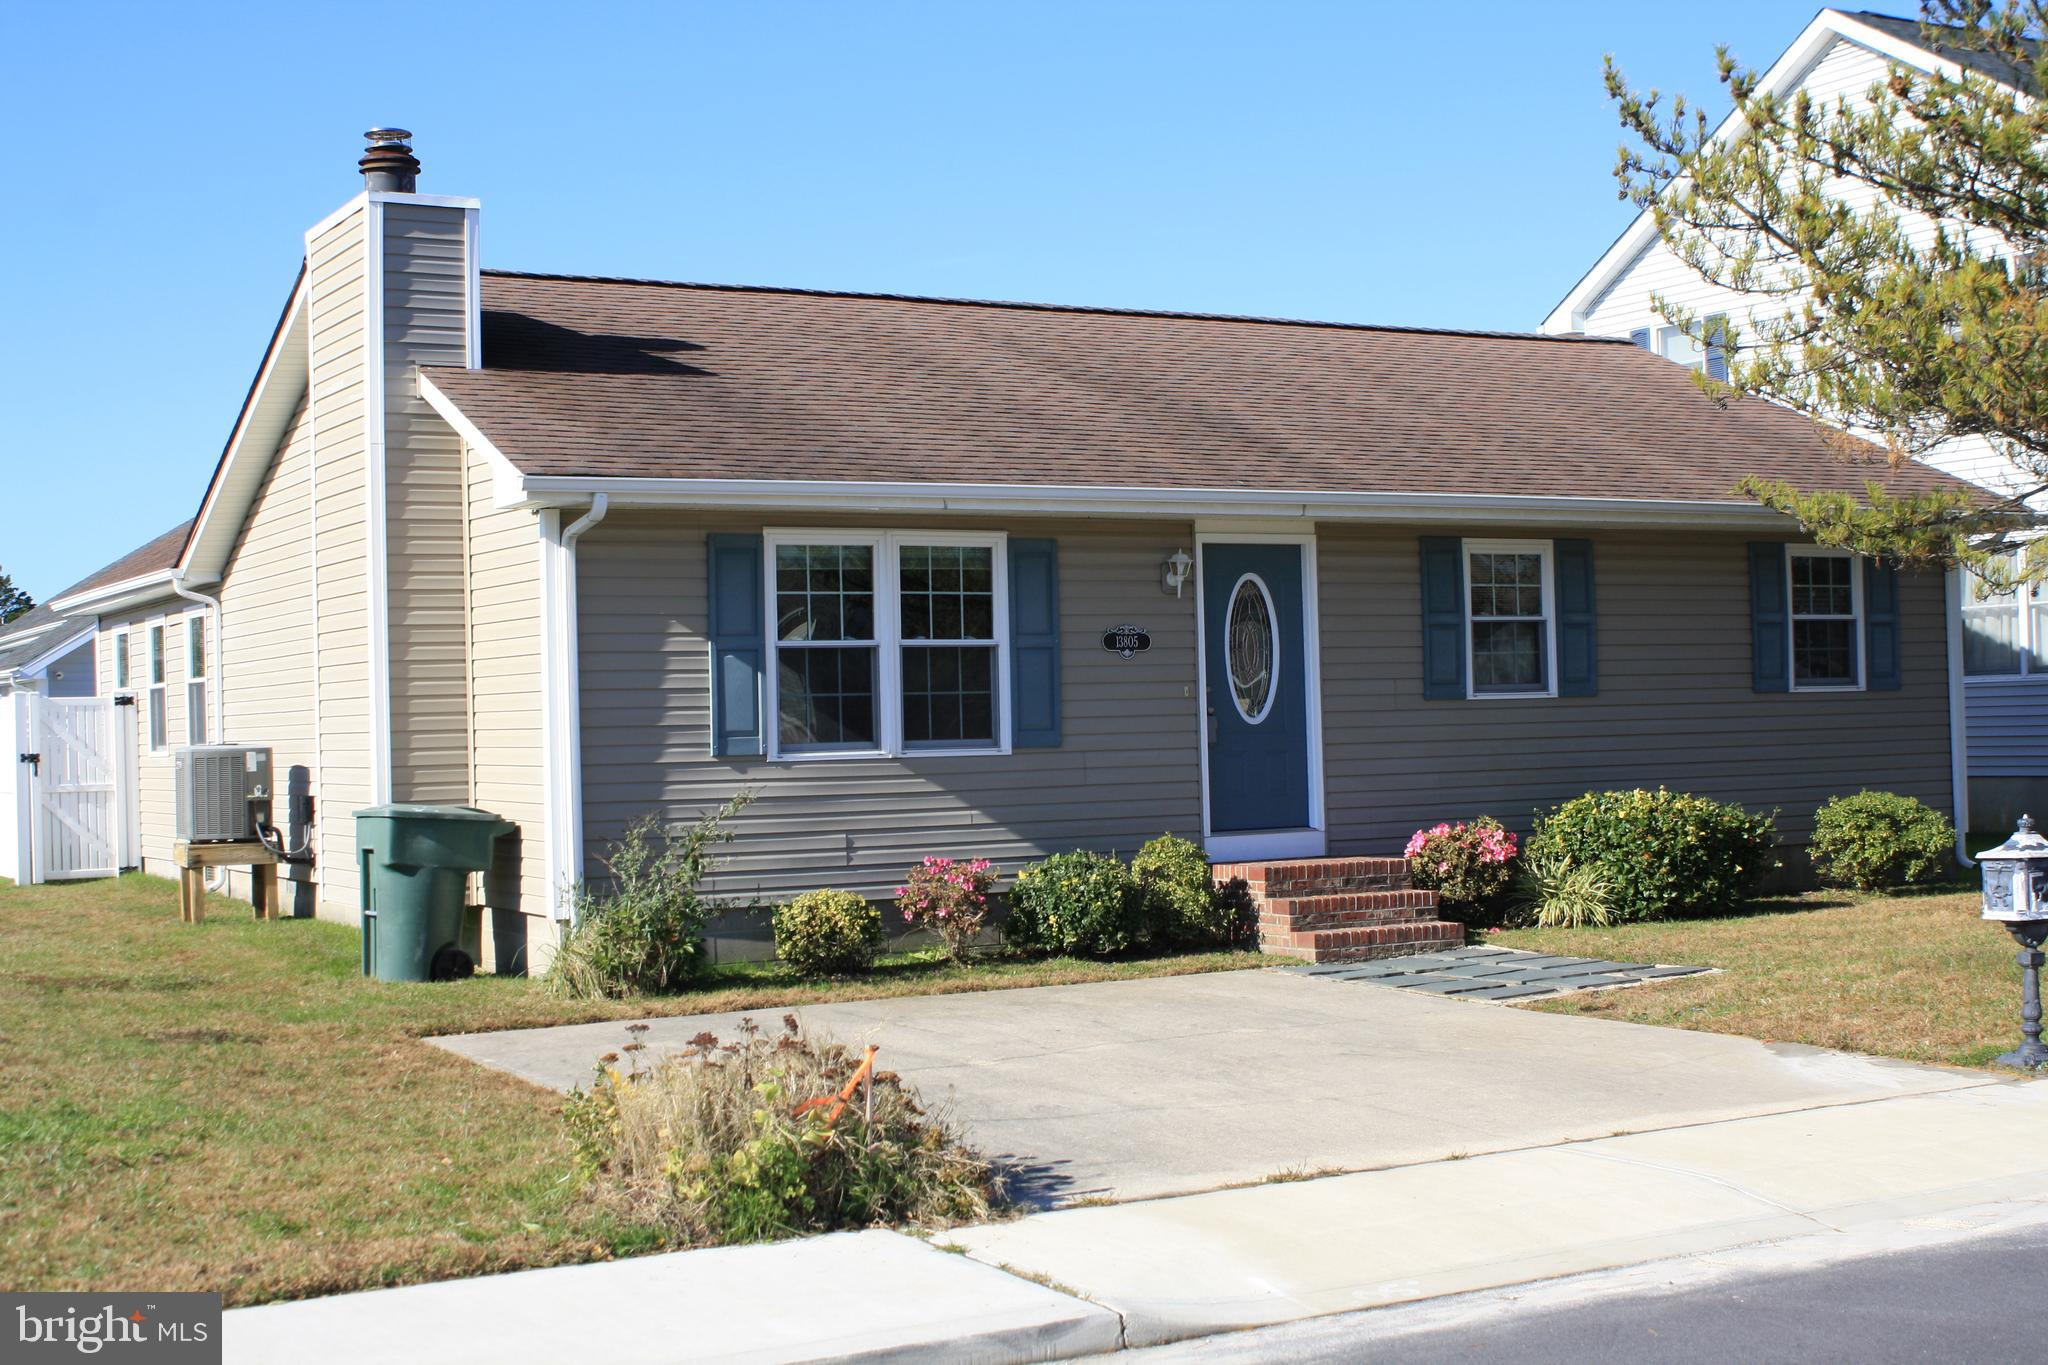 Cute 3/2 rancher on quiet street in Caine Woods.  Delightful south and west facing sunroom addition.